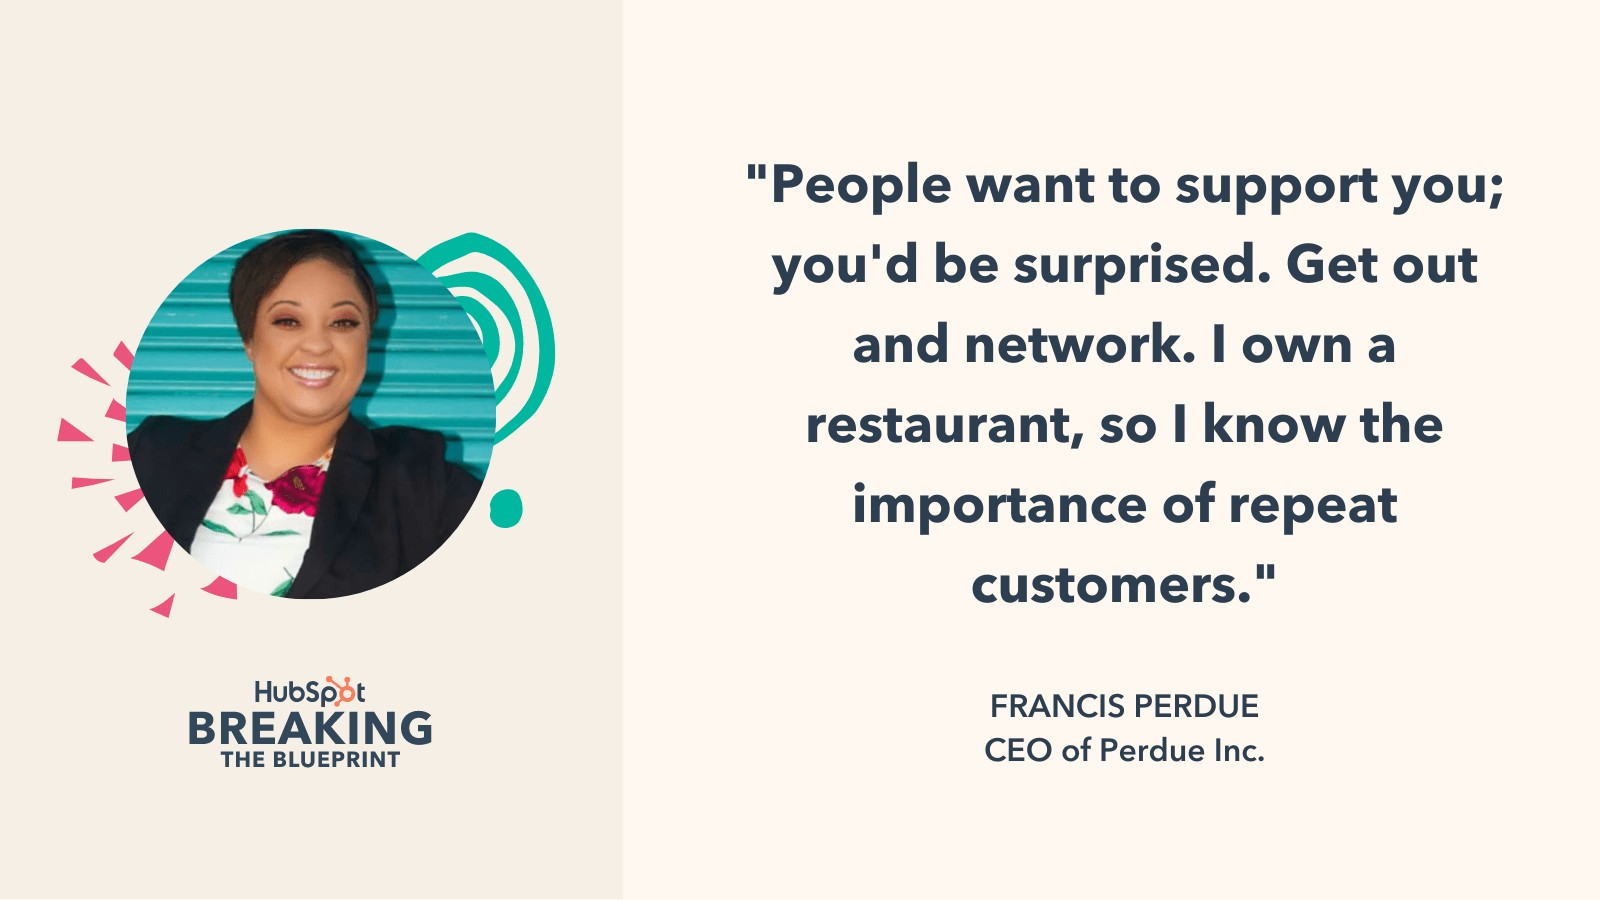 Email marketing strategy from CEO Francis Perdue